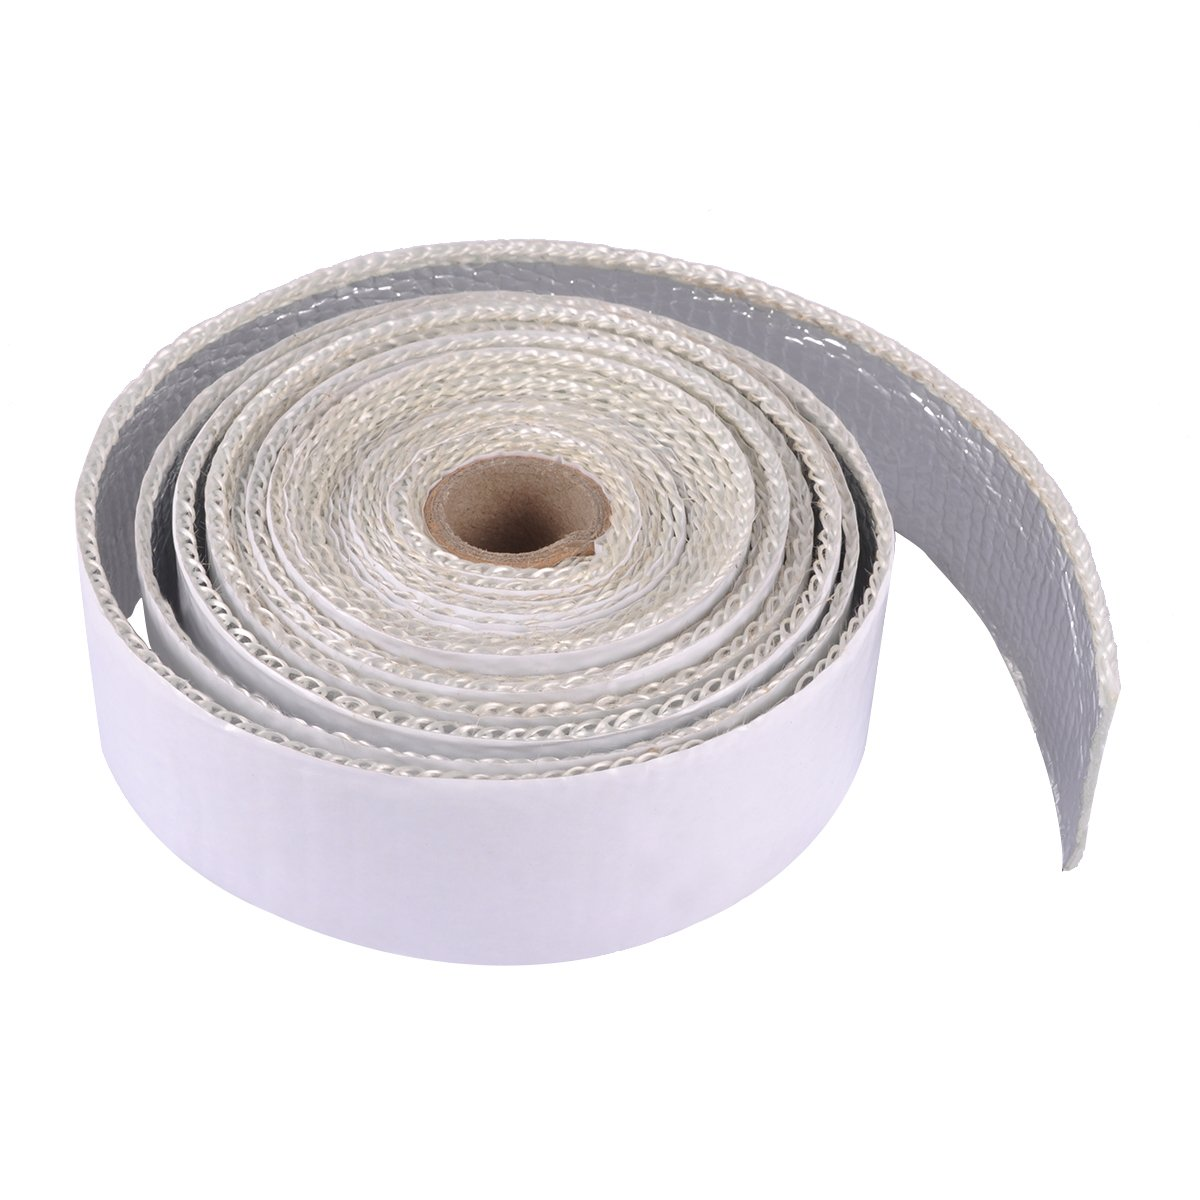 AutoEC Heat Shield Tape, Self-Adhesive Heat Reflective Tape Roll, Adhesive Backed Heat Barrier for Car, Truck, Motorcycle (1.5''X 15')